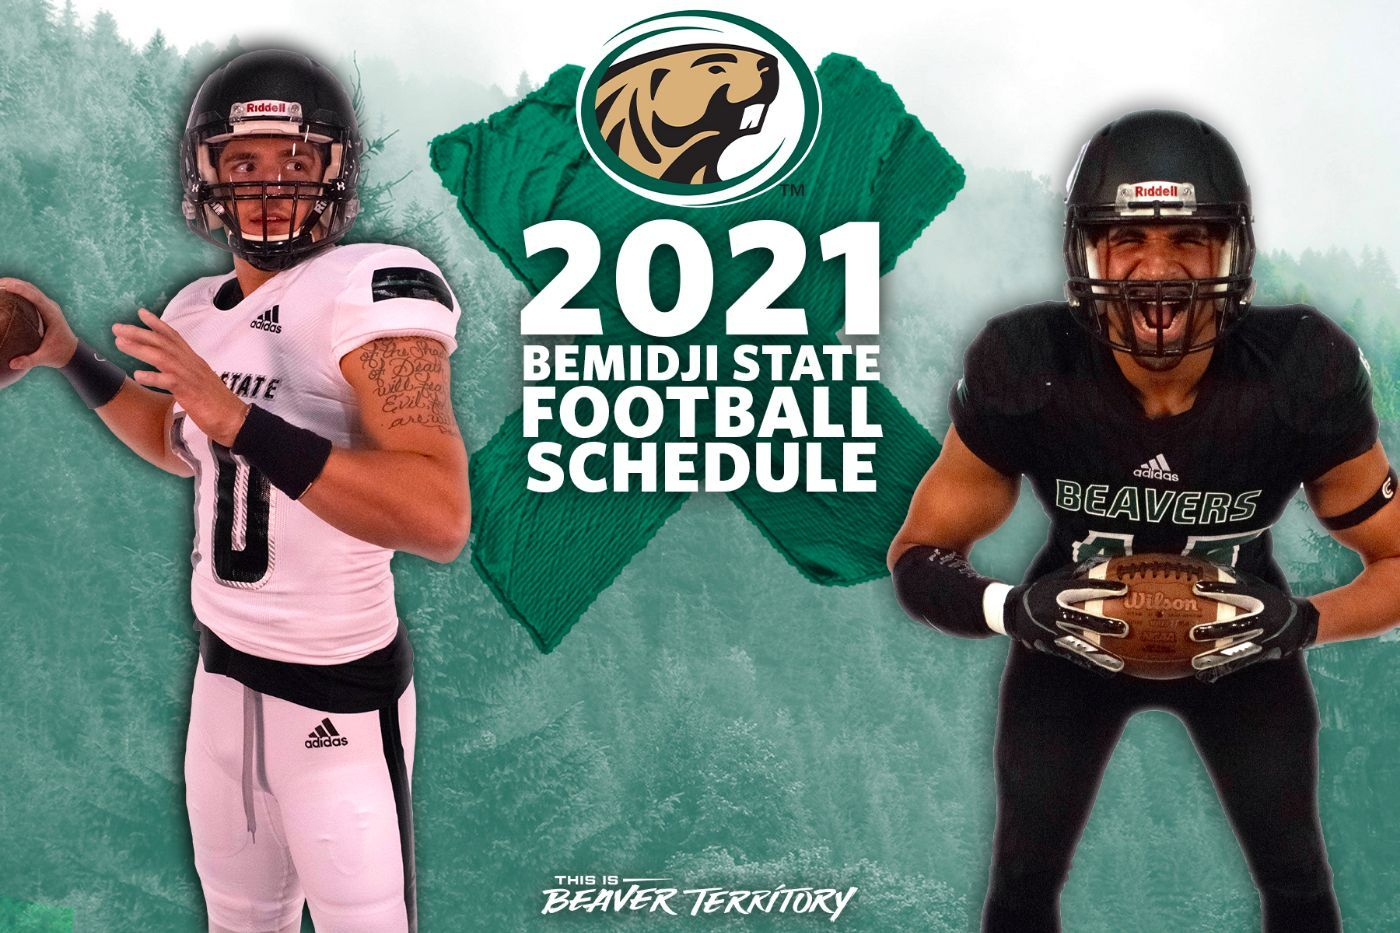 Bemidji State football returns to action Sept. 2 as 2021 schedule released